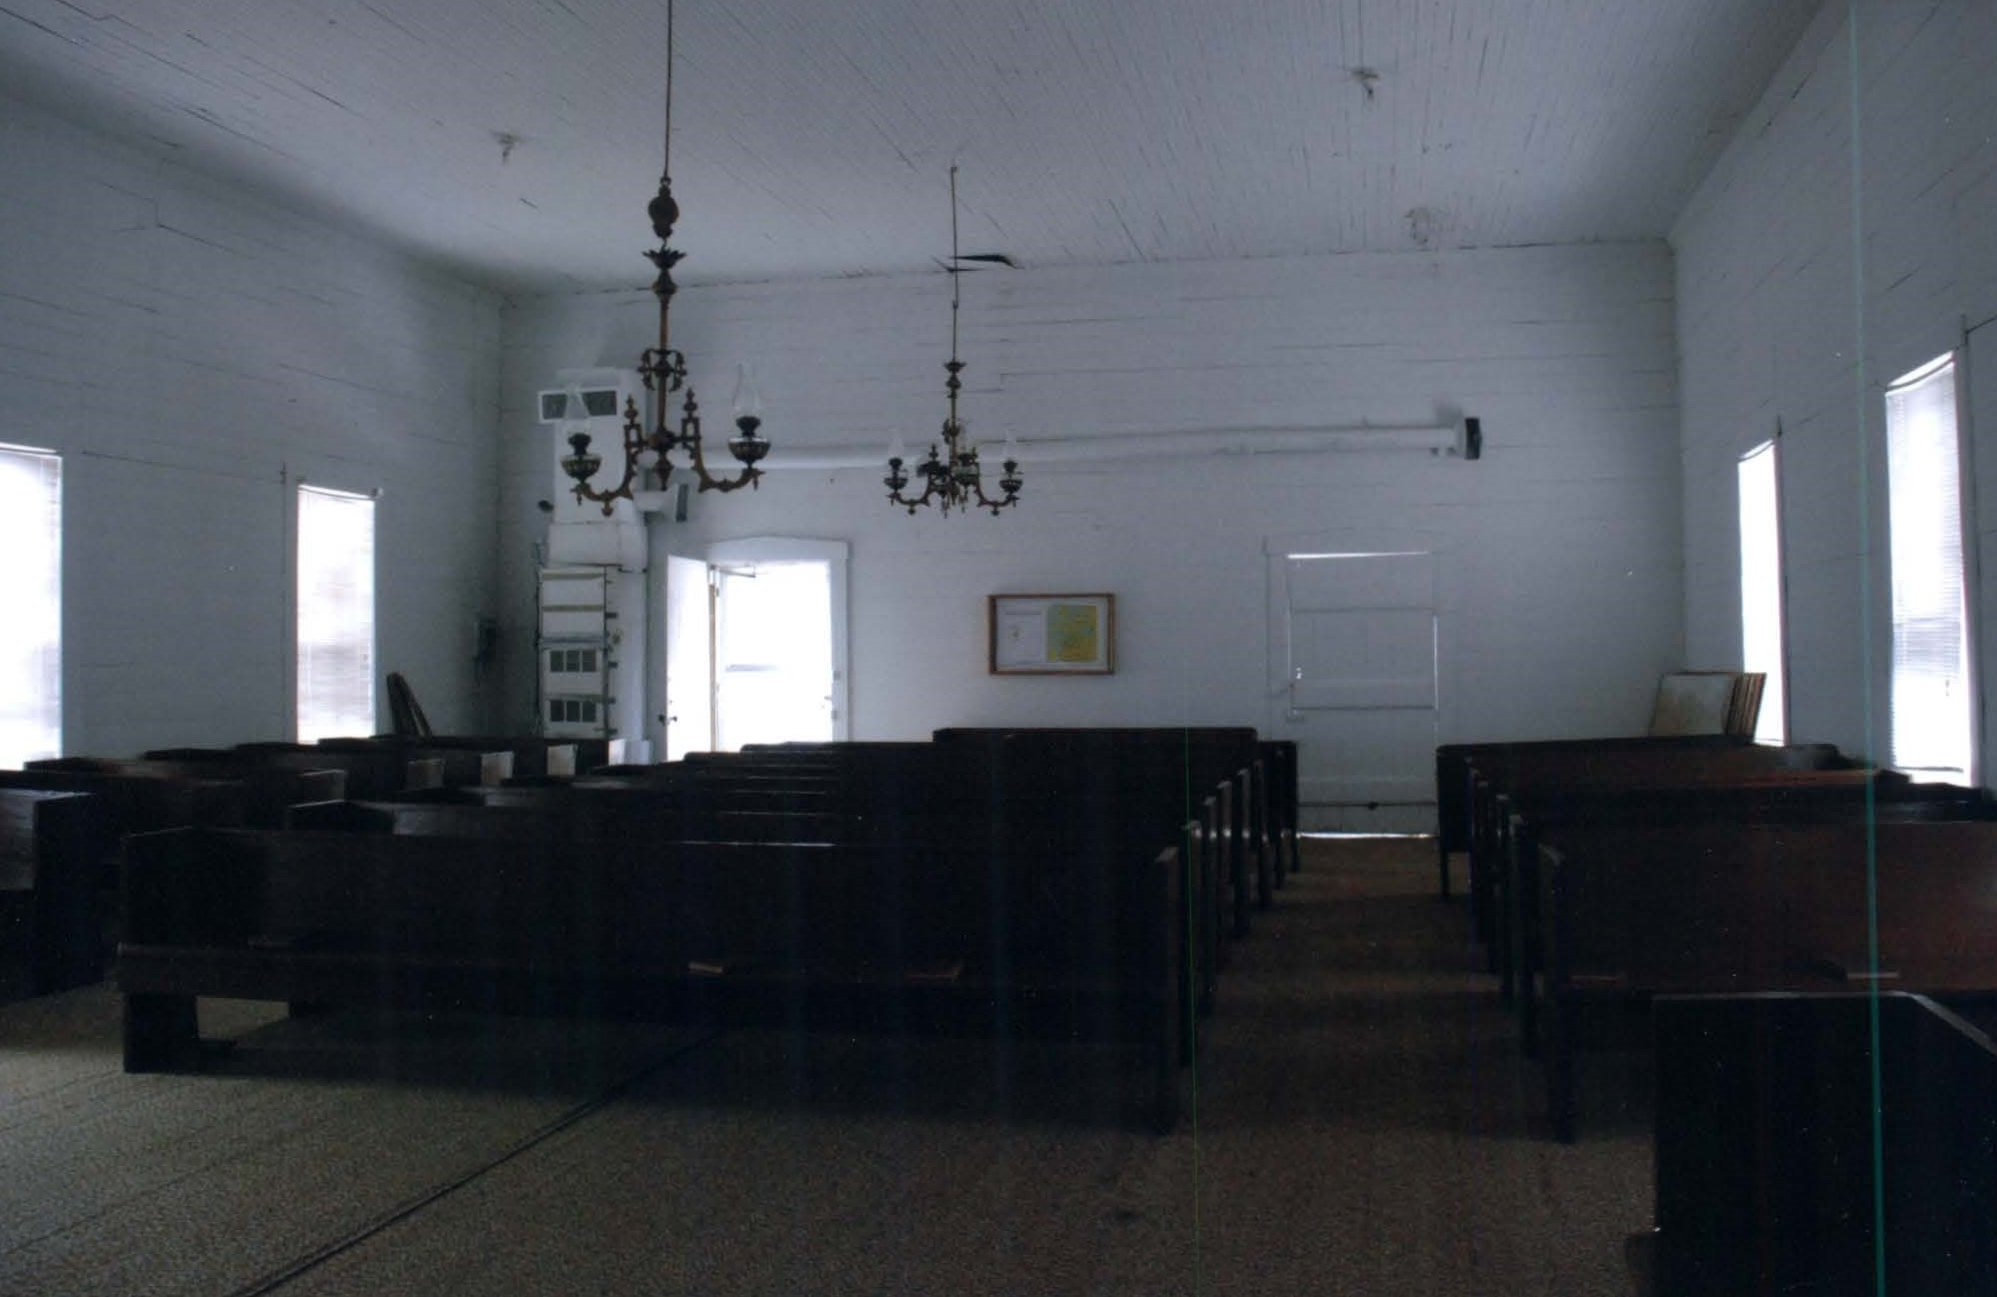 The Interior of the church facing the southside of the building.